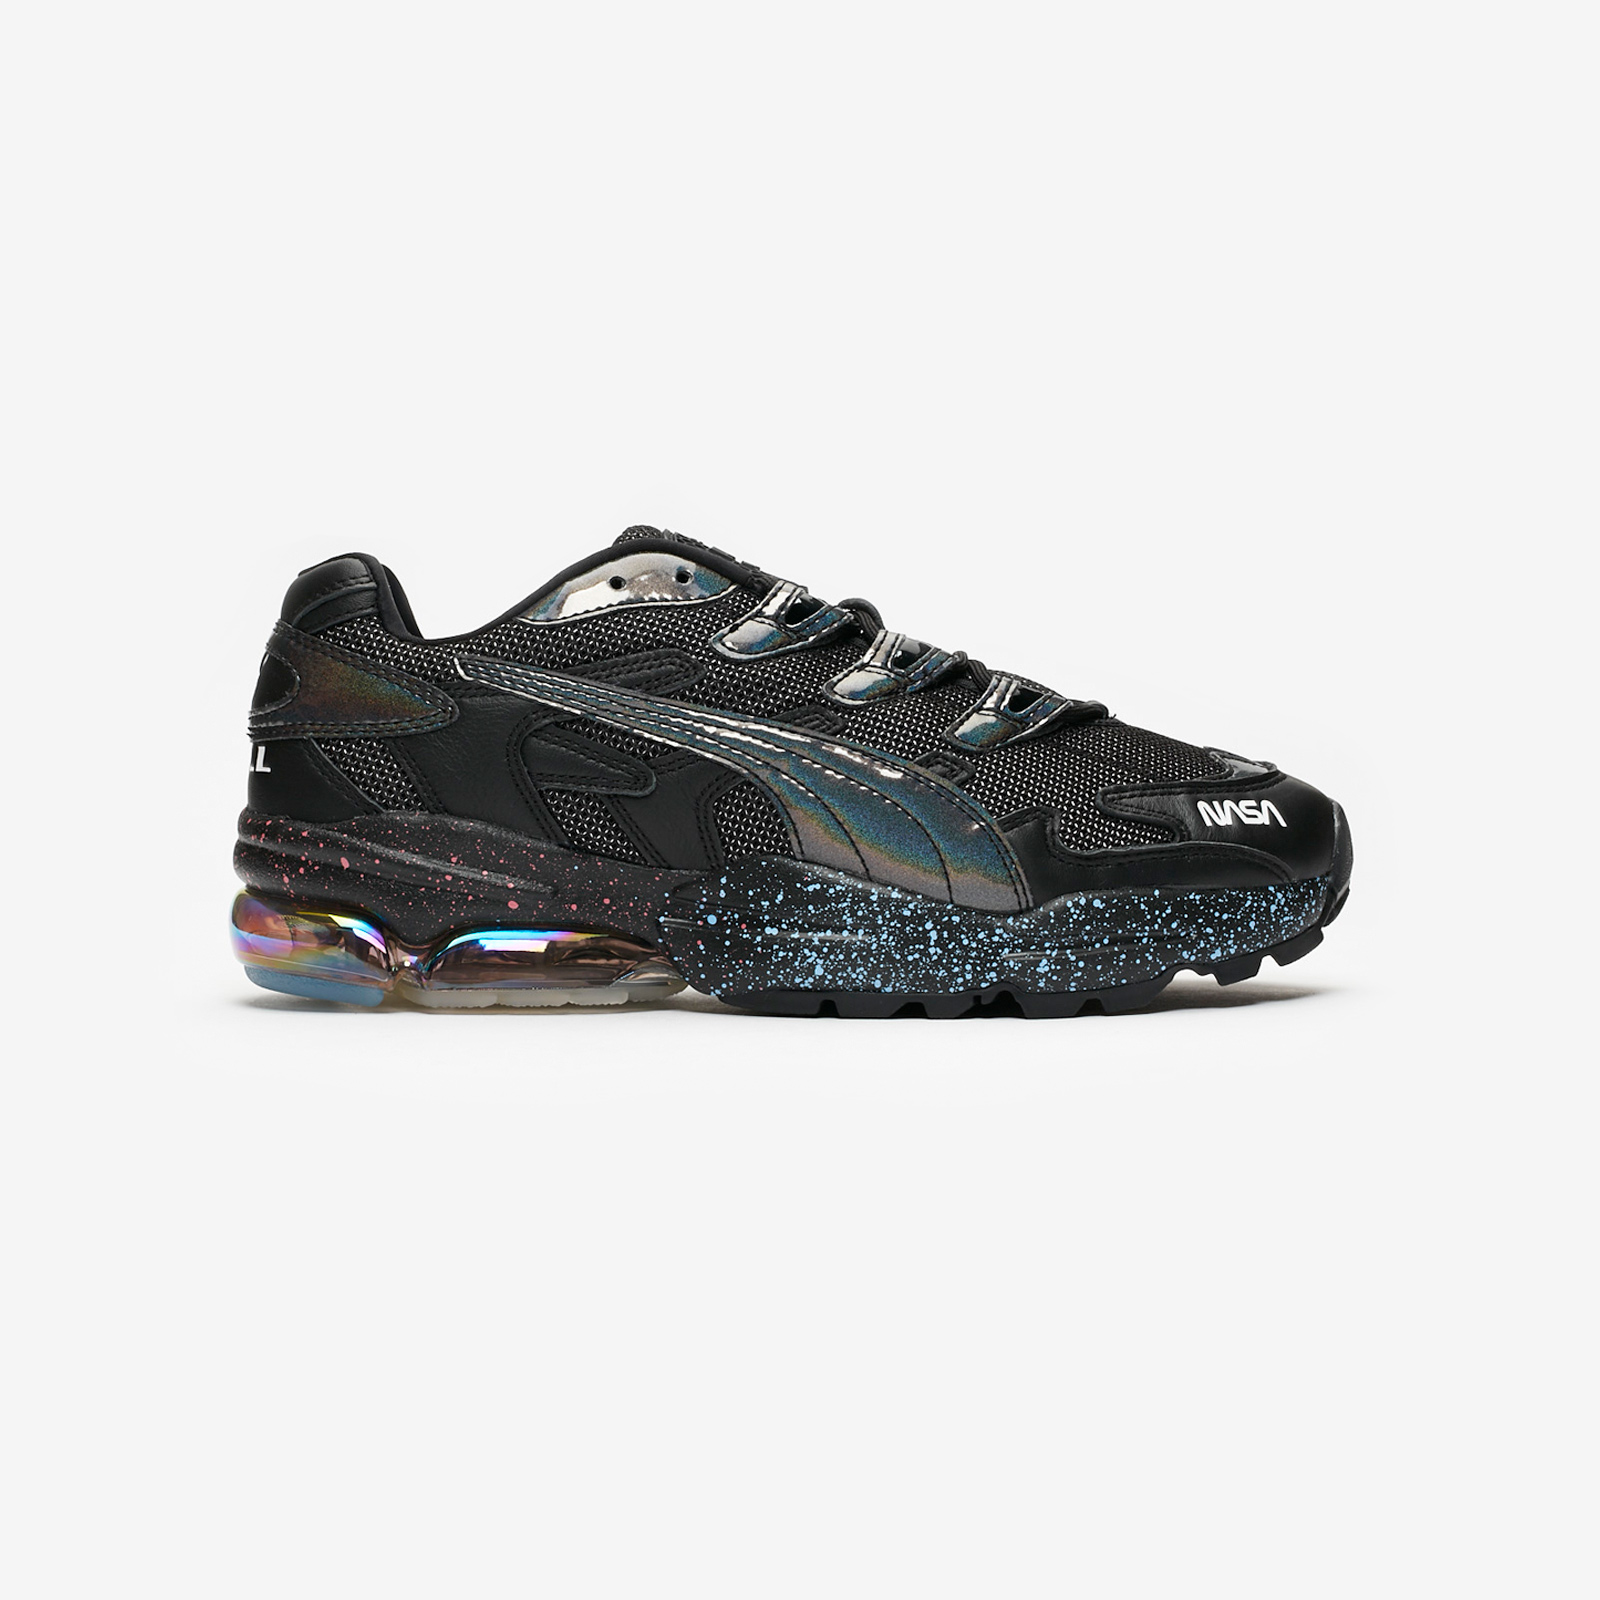 Puma Cell Alien X Space Agency - 372513-01 - Sneakersnstuff ...